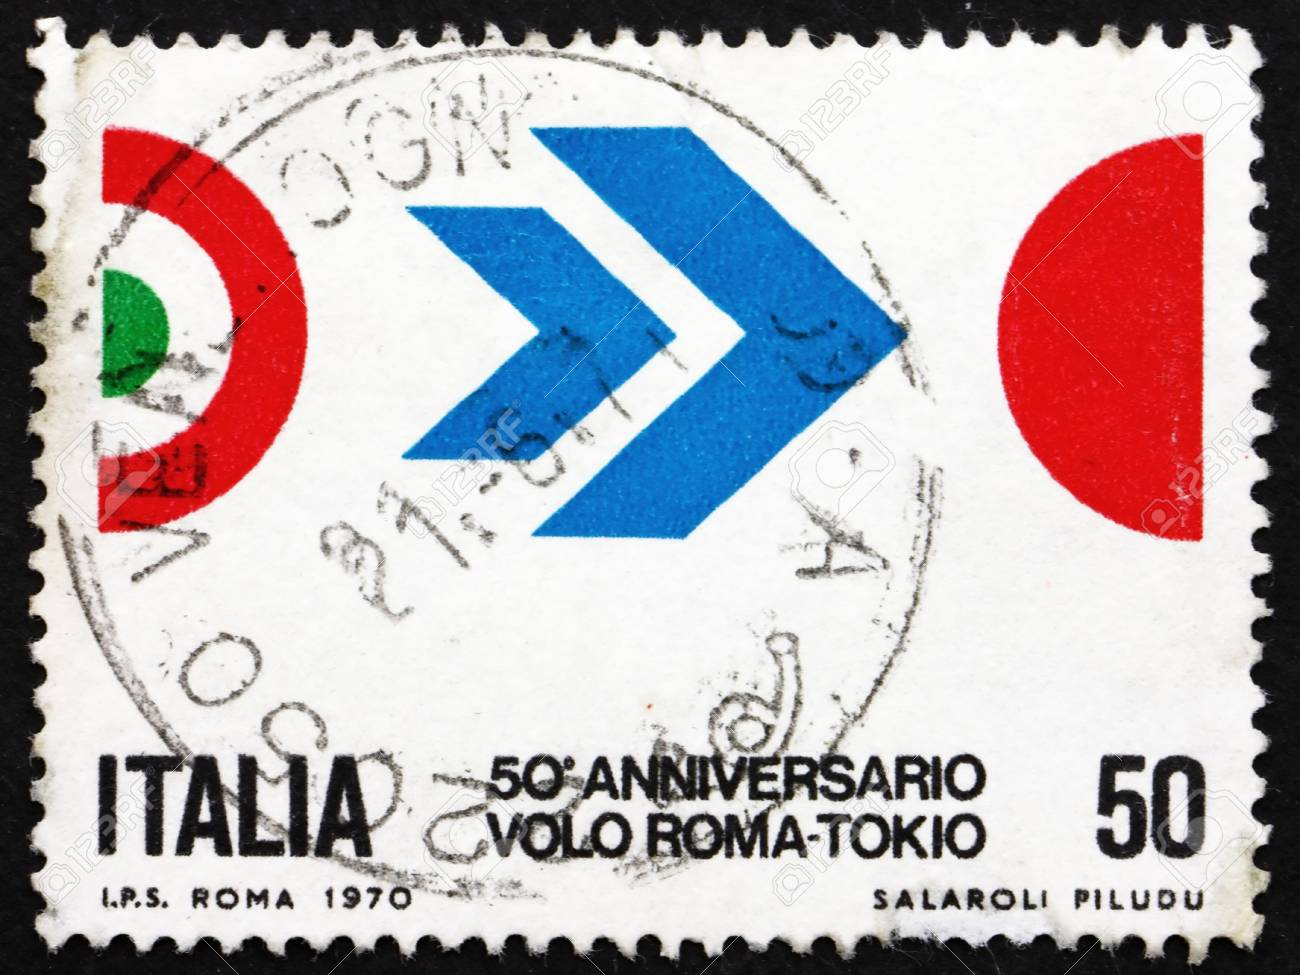 ITALY - CIRCA 1970: a stamp printed in the Italy shows Symbol of Flight, Colors of Italy and Japan, 50th Anniversary of Arturo Ferrarin's Flight from Rome to Tokyo, circa 1970 Stock Photo - 14720435